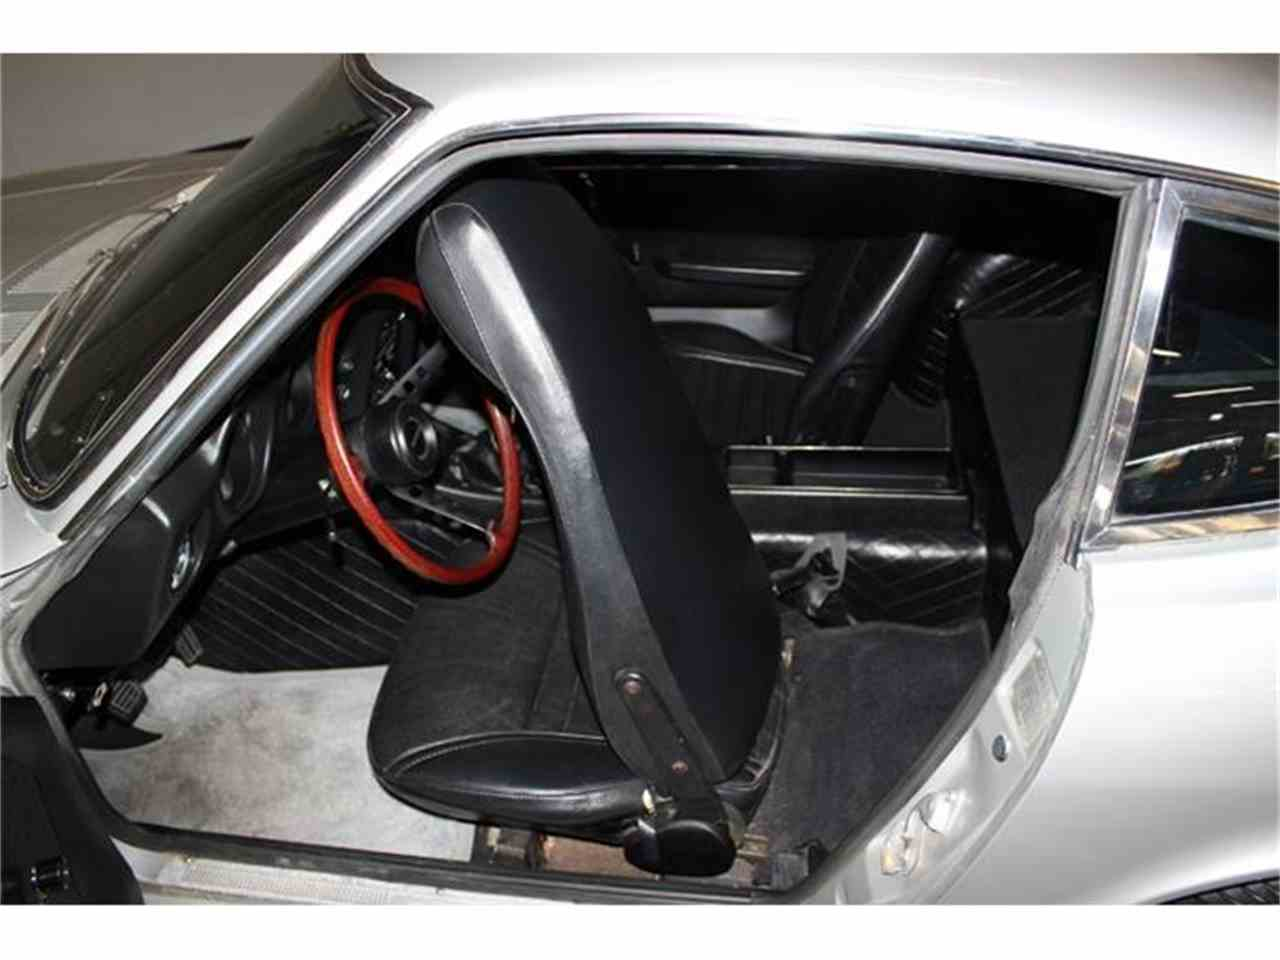 Large Picture of 1973 Datsun 240Z located in Lillington North Carolina - $17,500.00 Offered by East Coast Classic Cars - HIRV